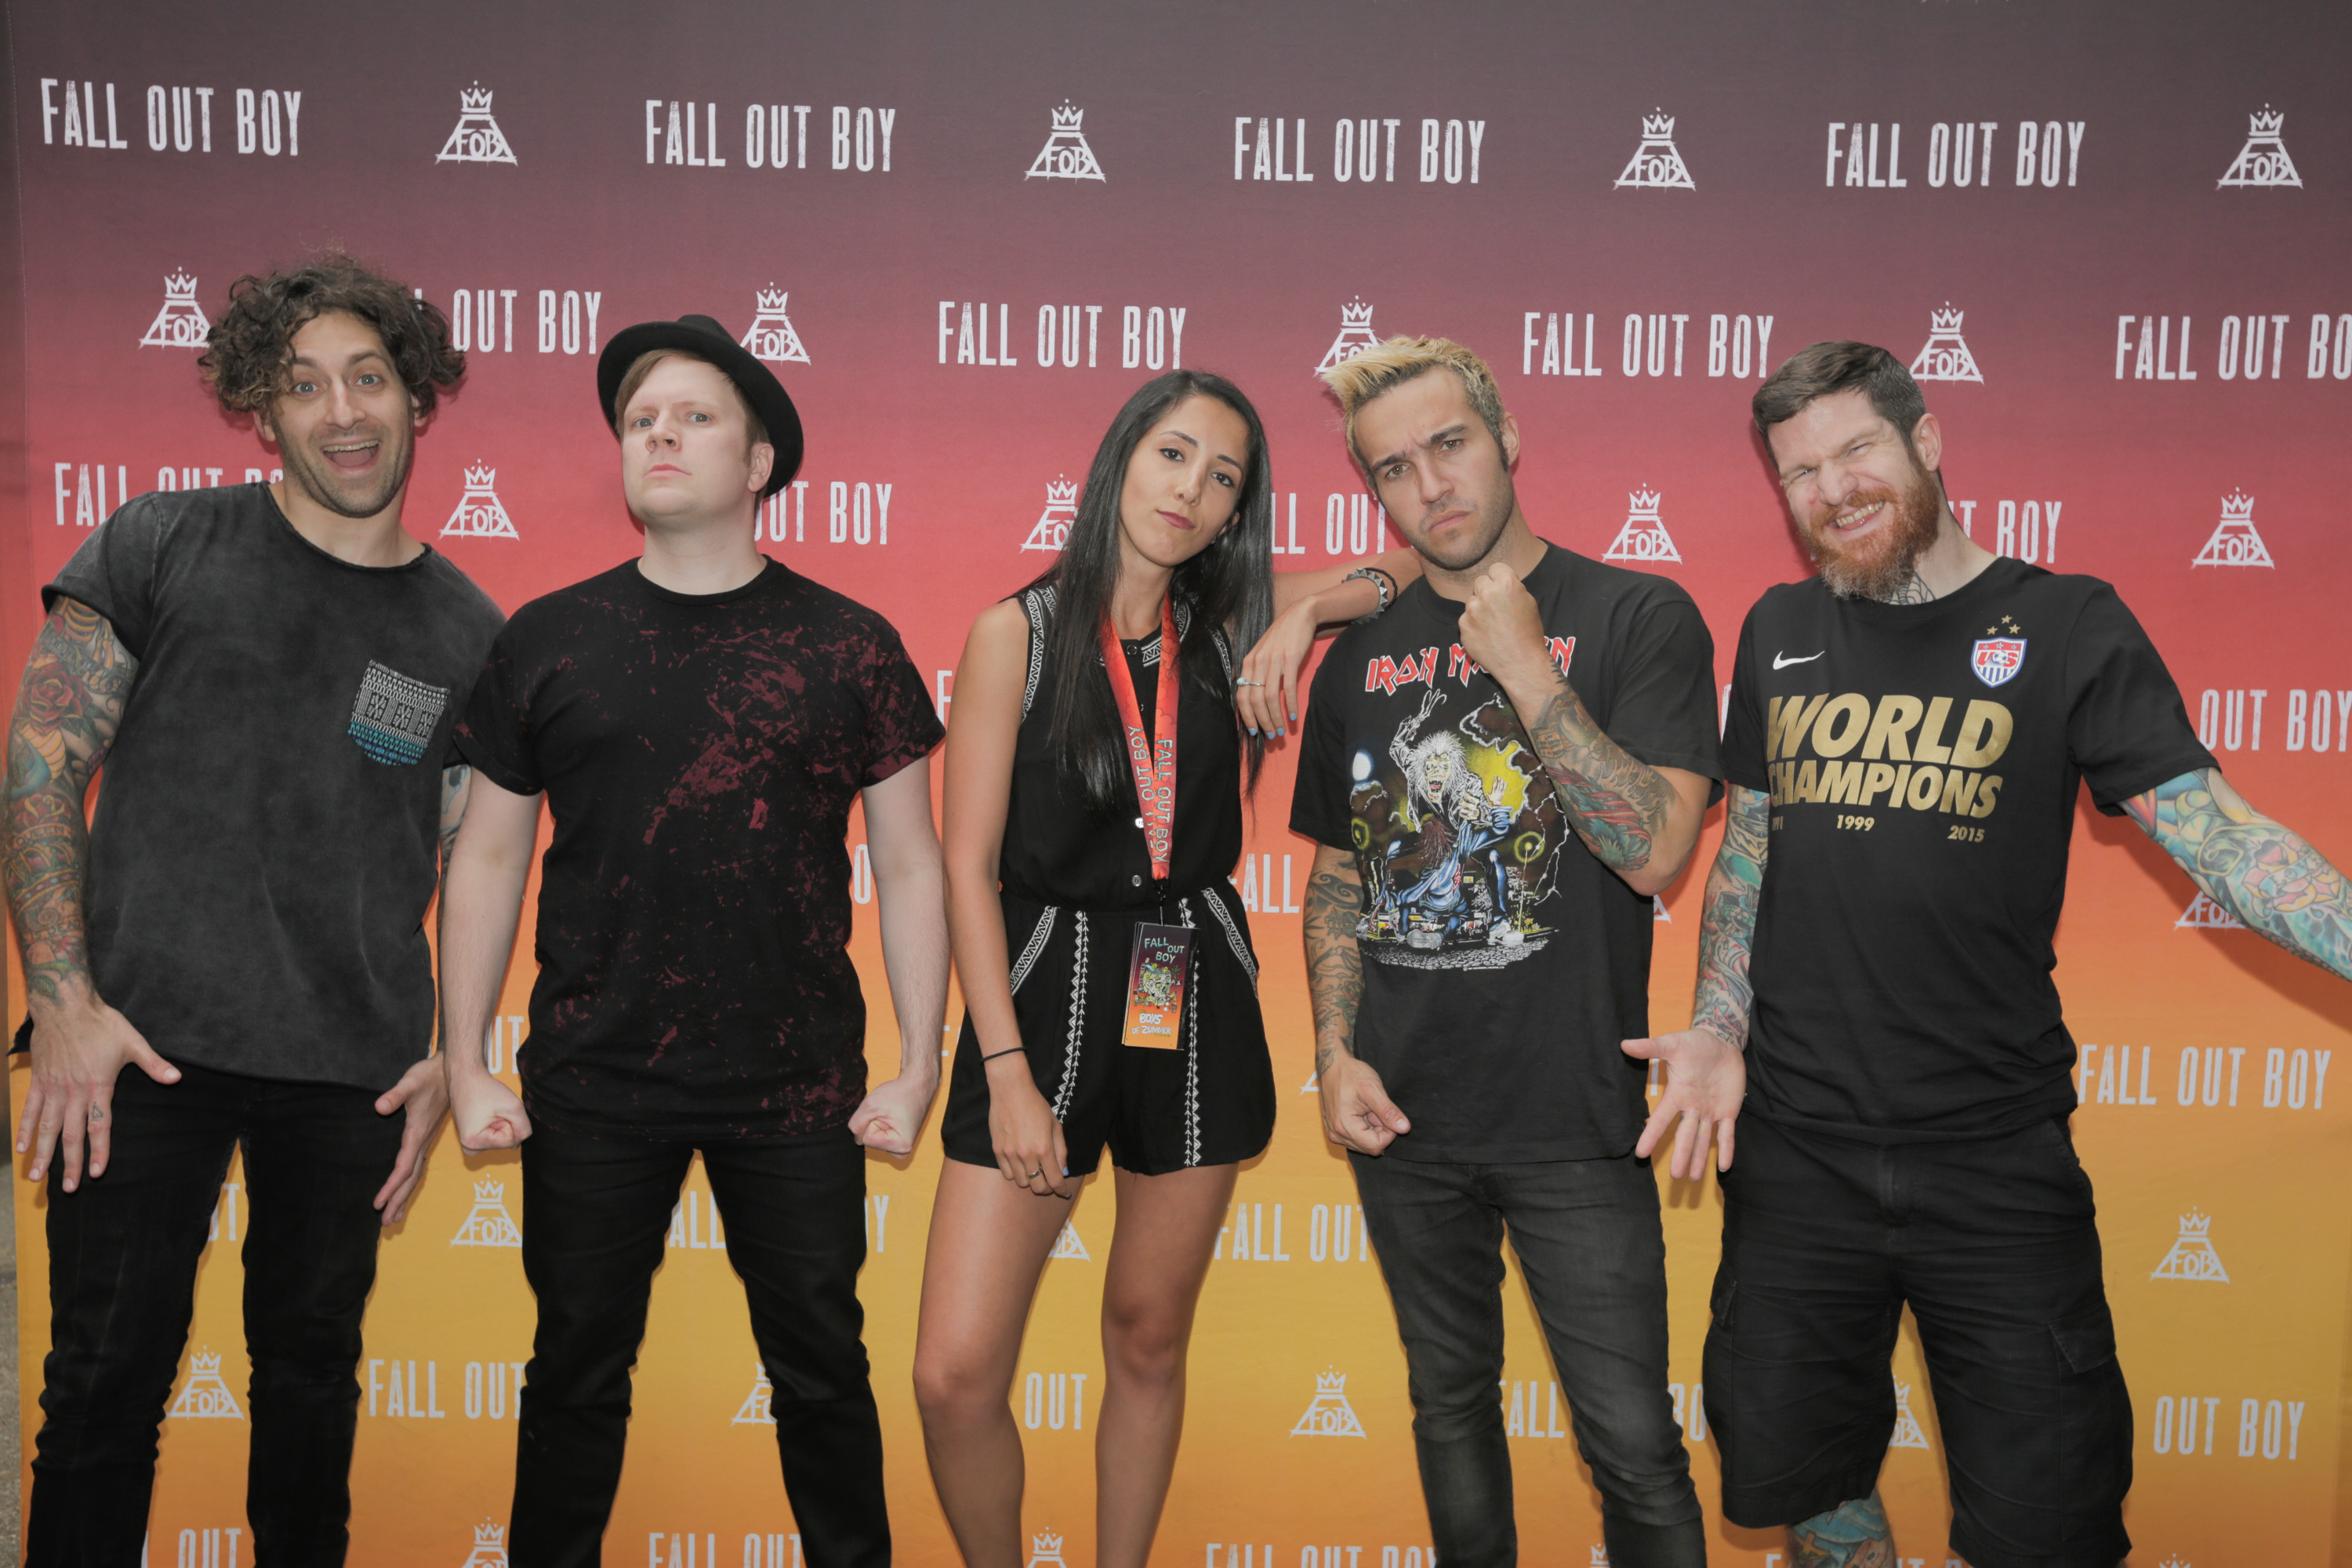 Fall Out Boy Tickets Available